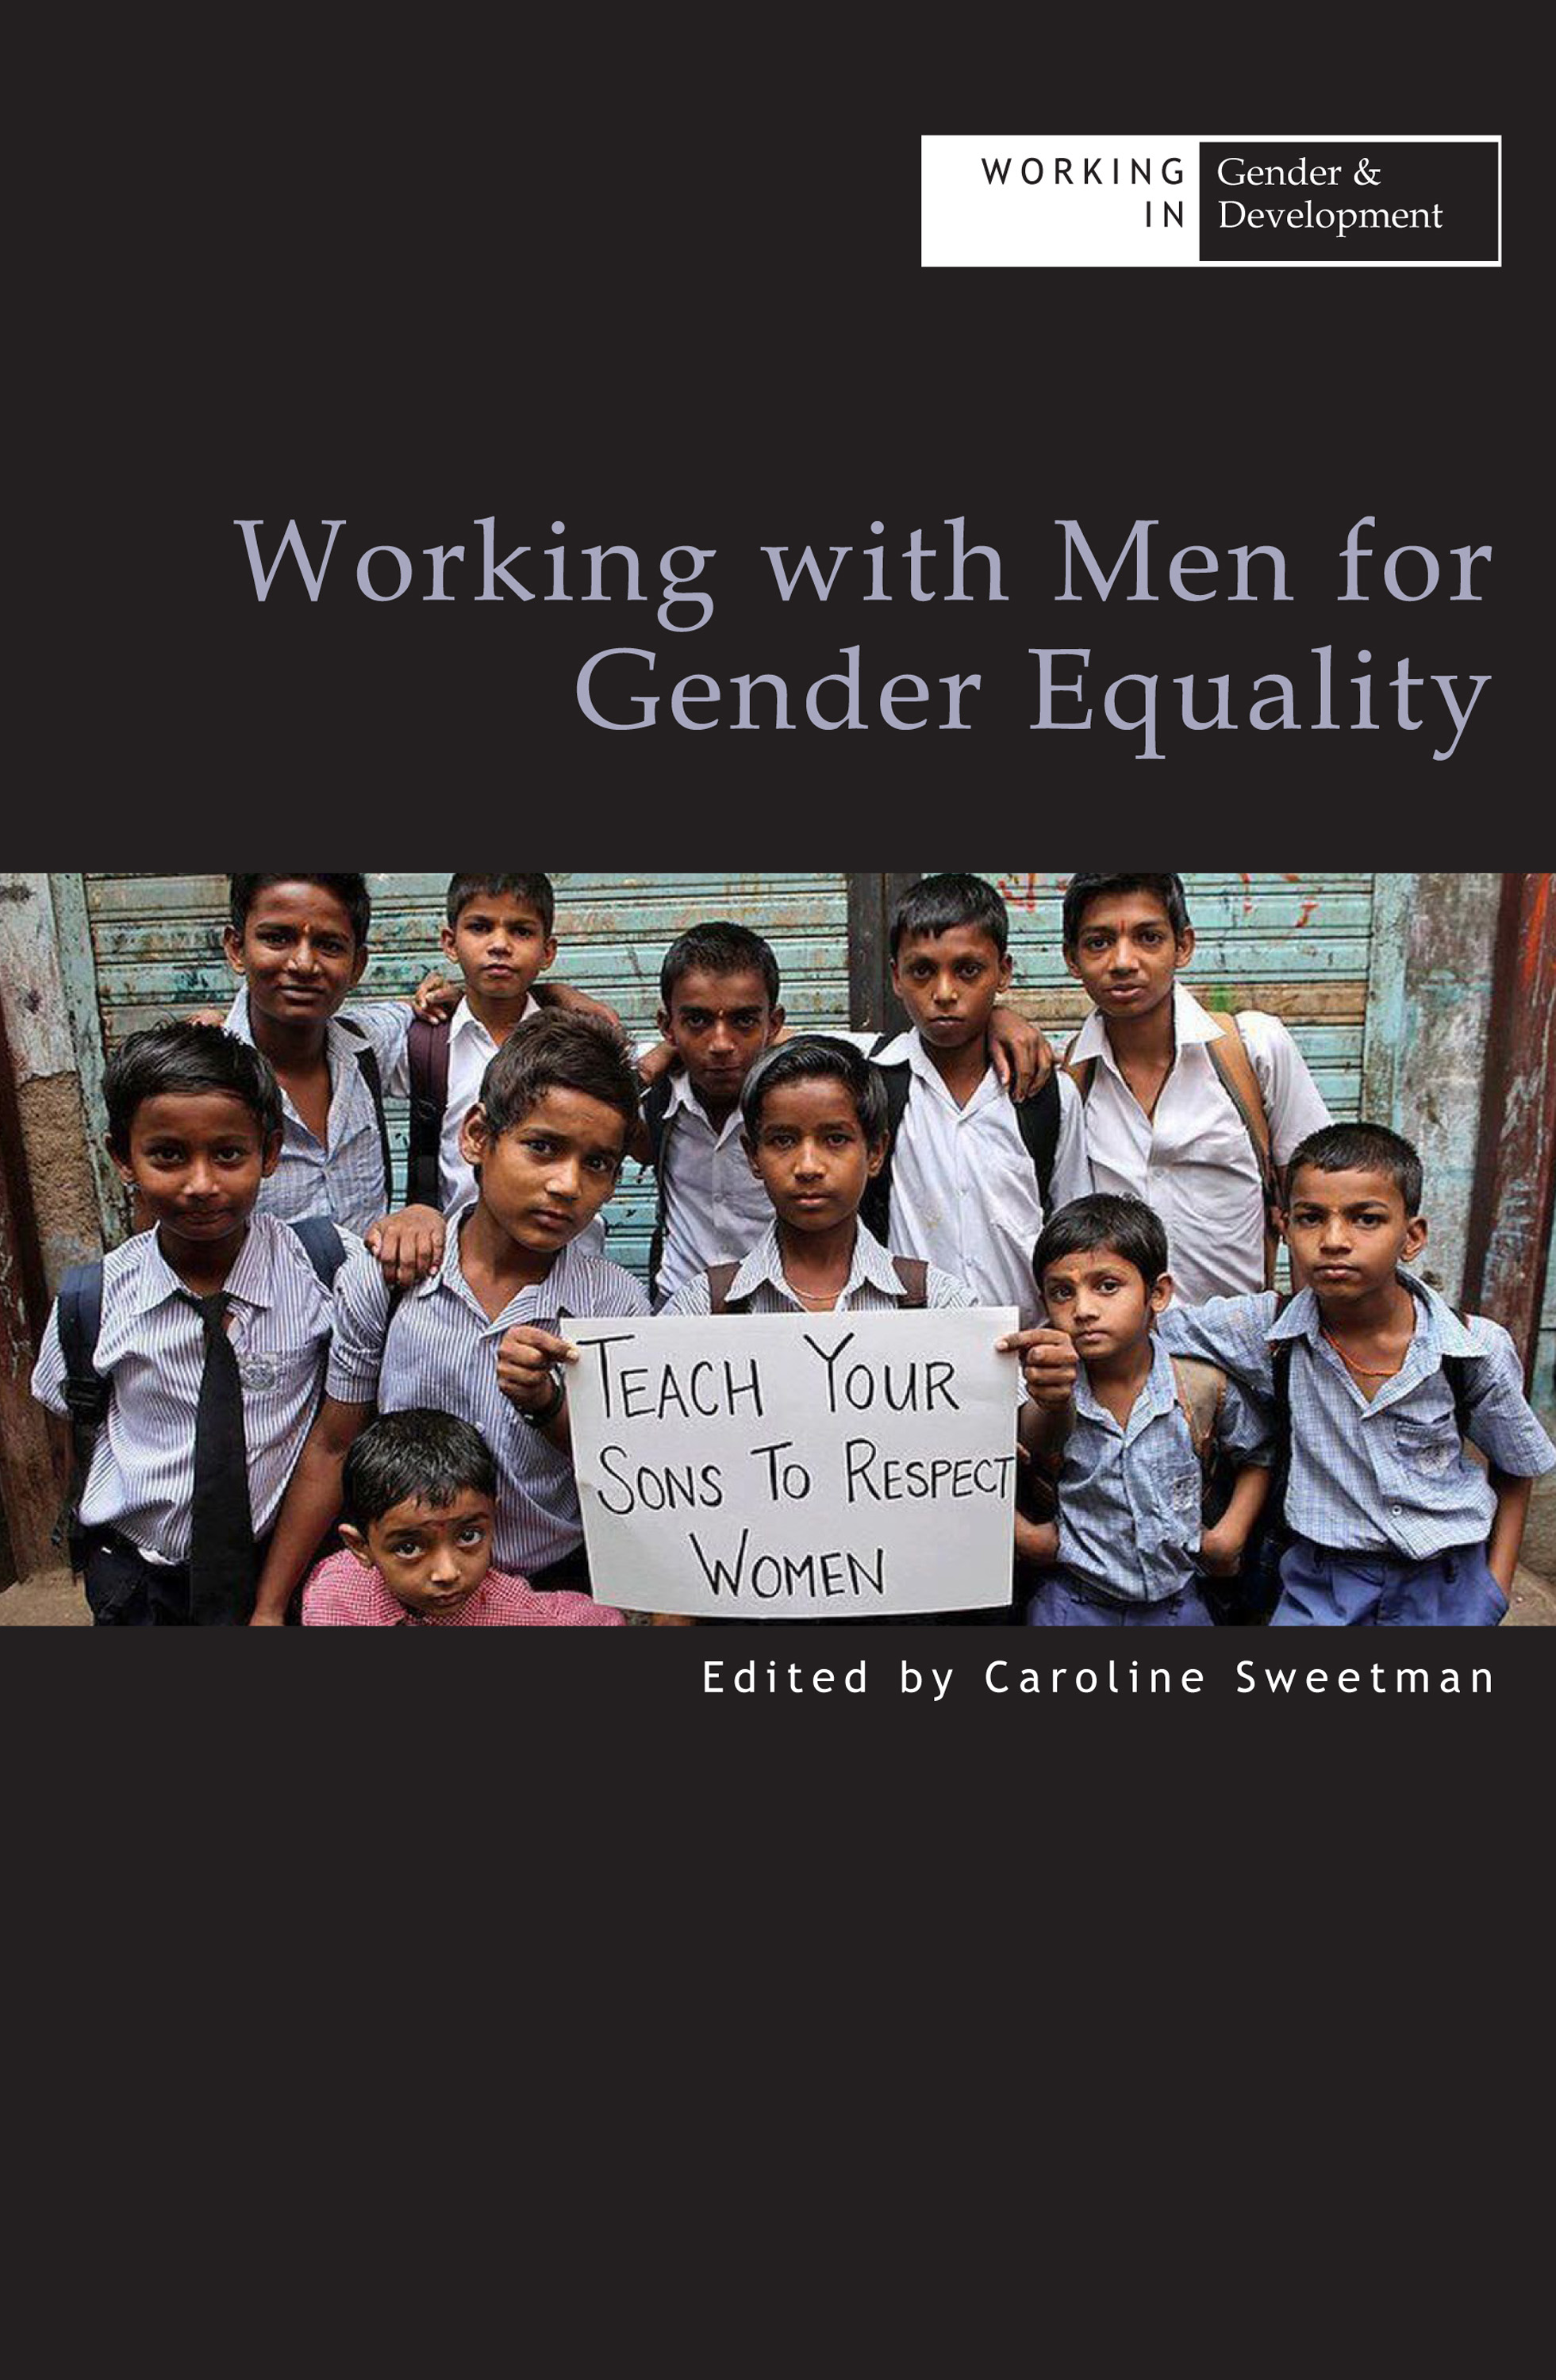 Working with Men for Gender Equality